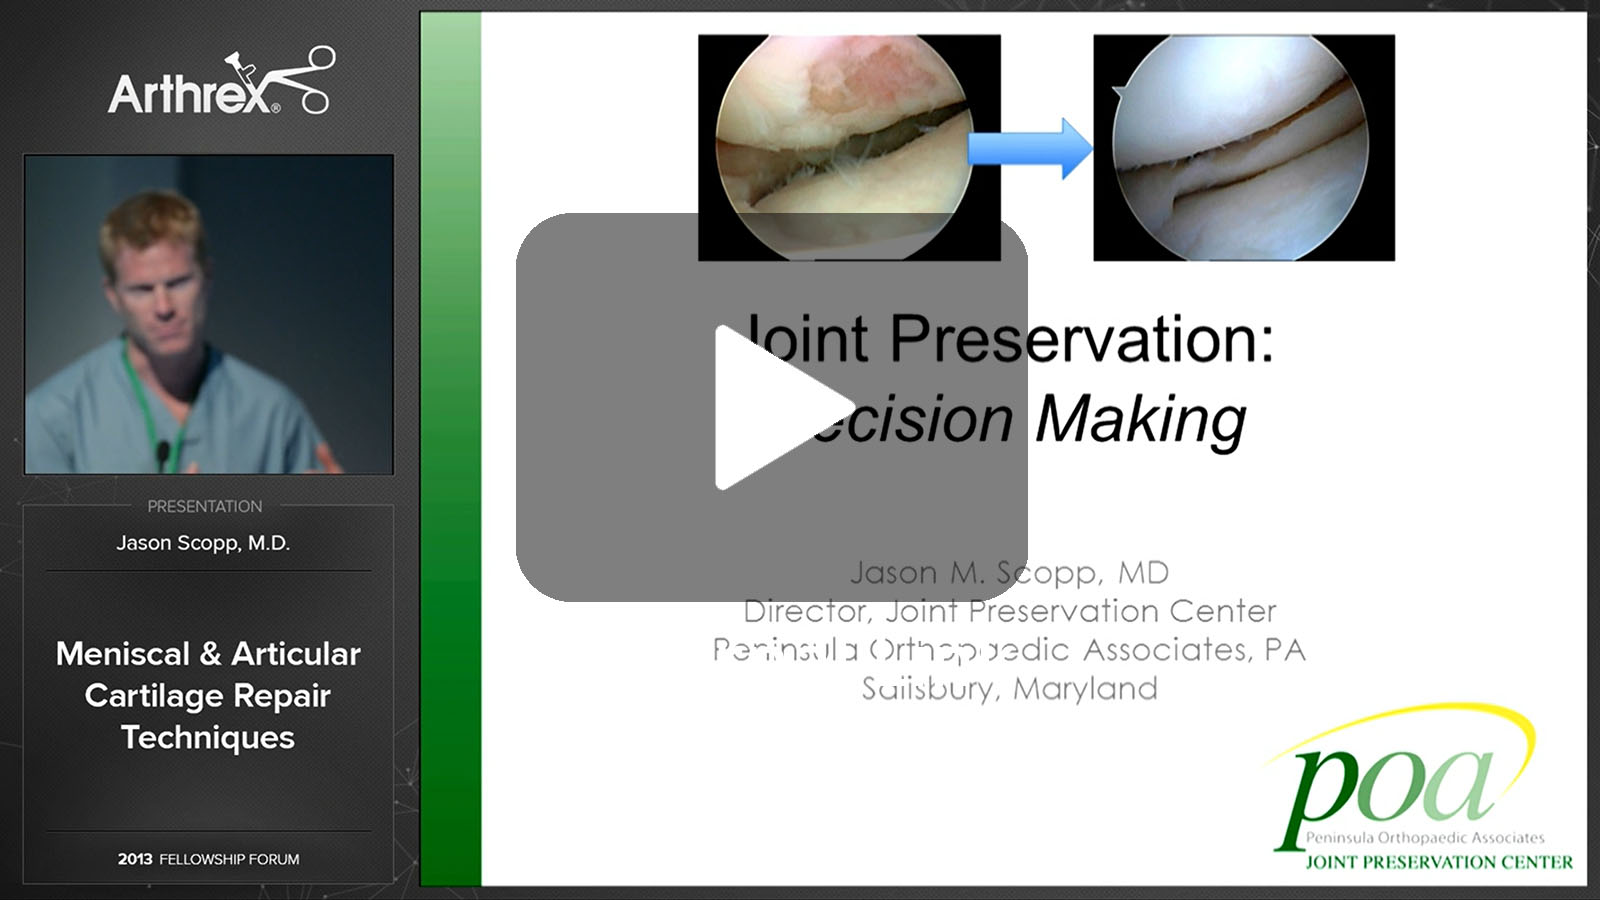 Meniscal & Articular Cartilage Repair Techniques (External Link)